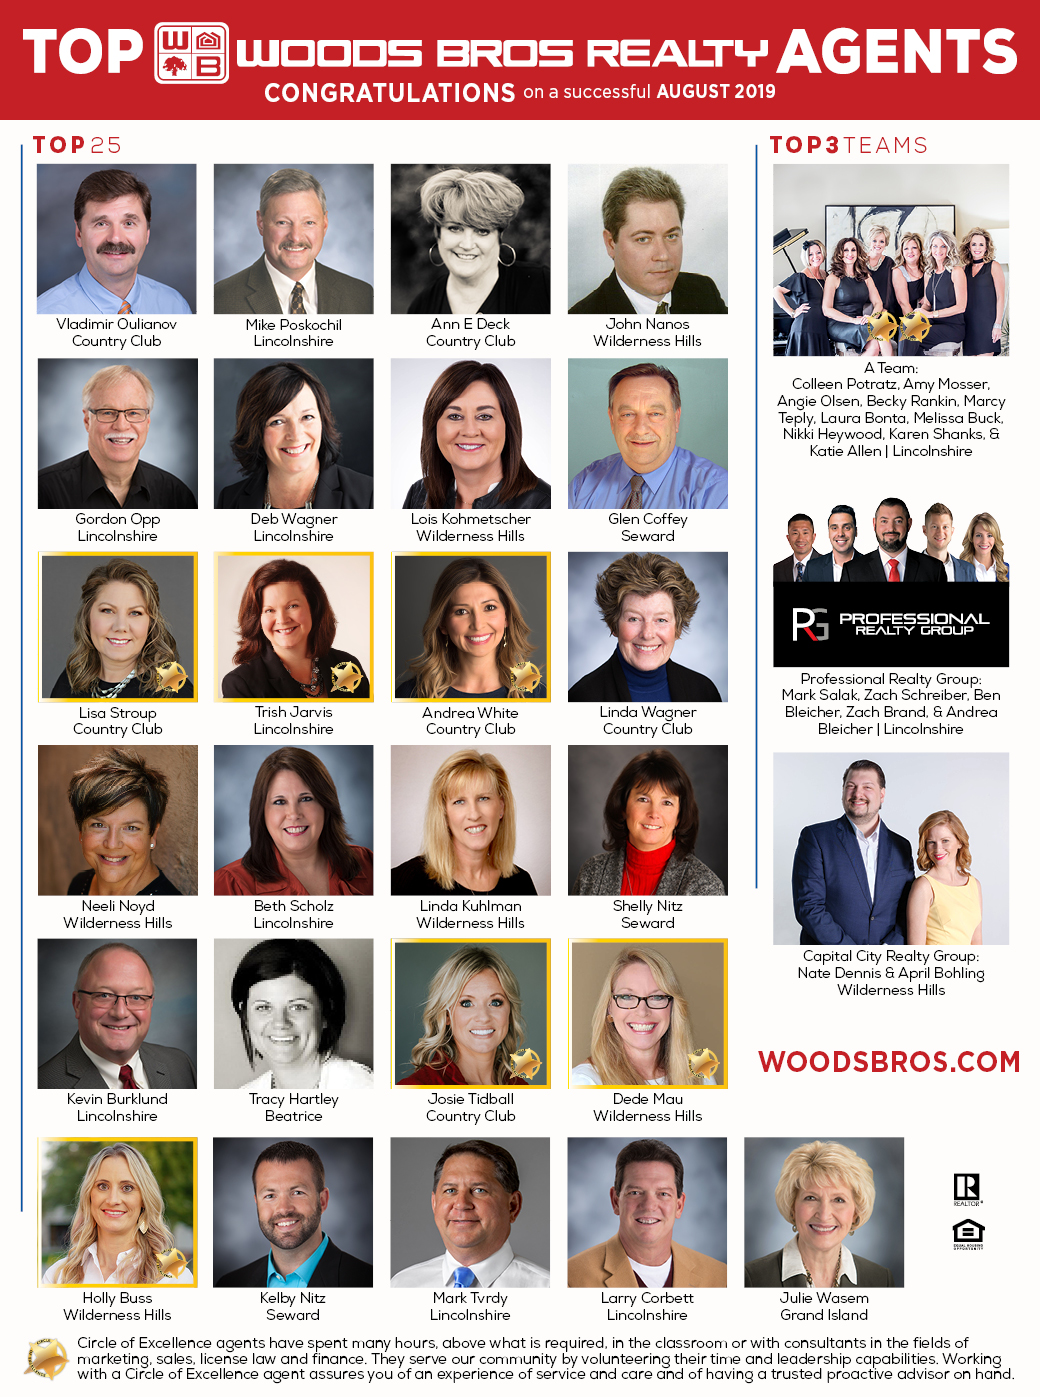 Woods Bros Realty Top Agents Aug 2019